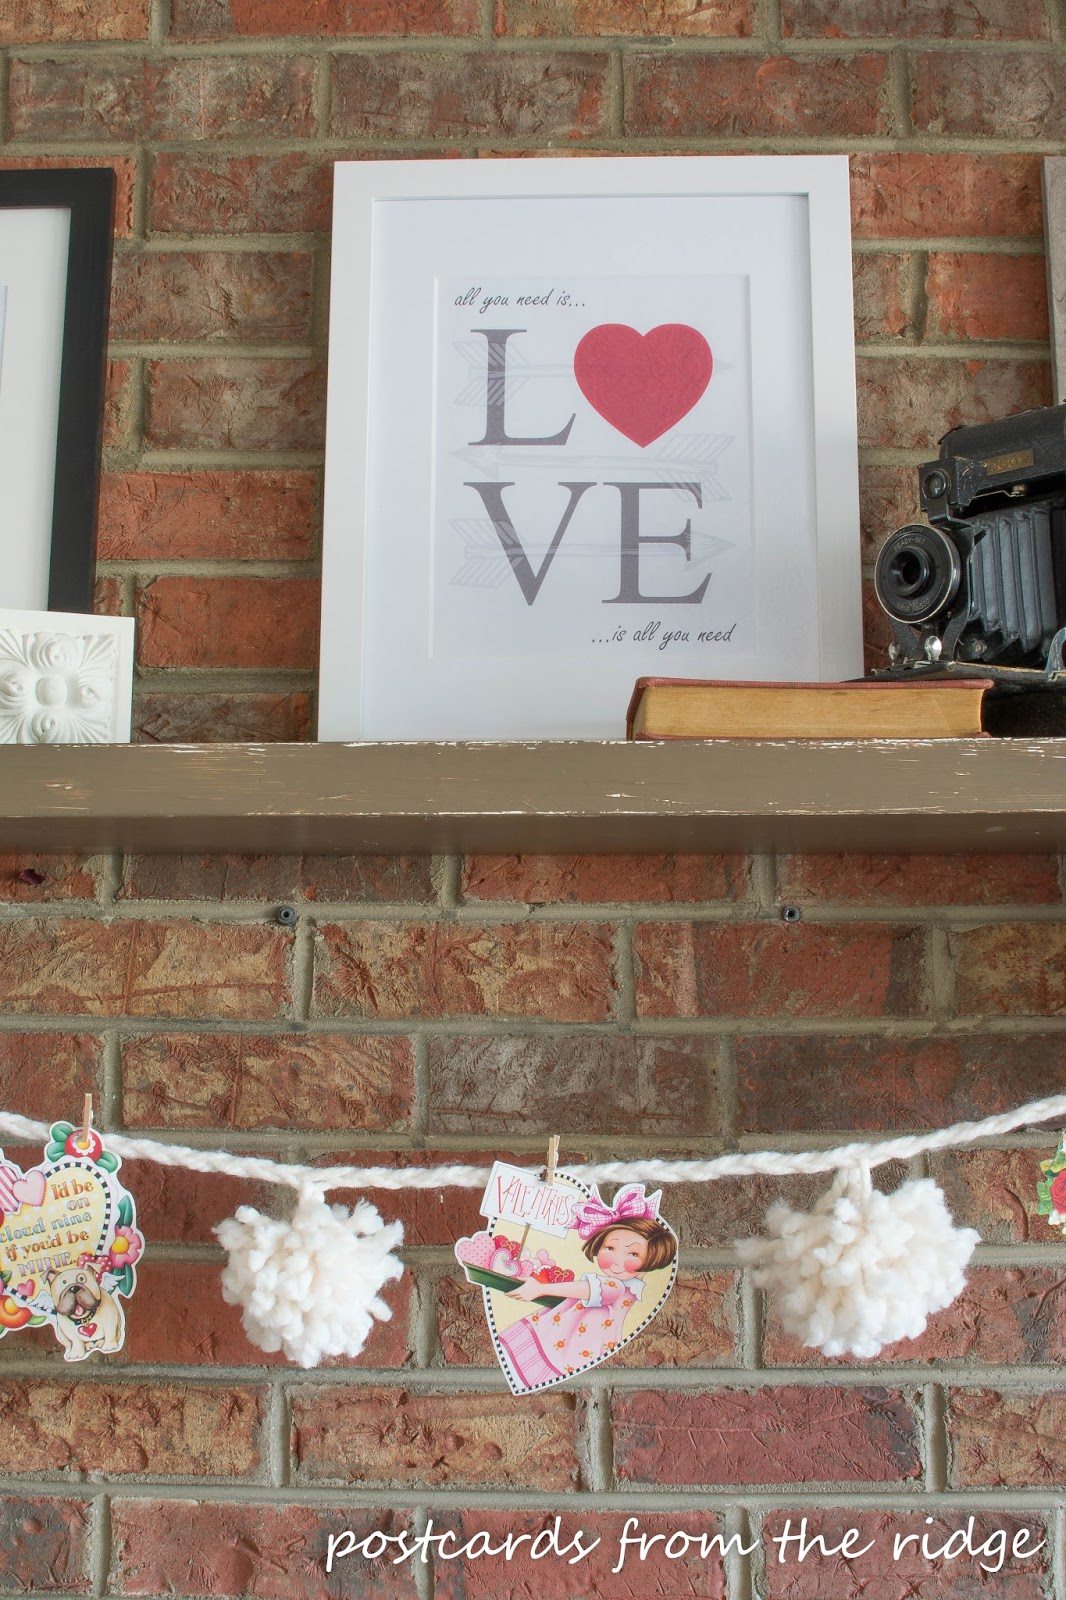 """All you need is love"" free Valentine's printable artwork. I love this! Postcards from the Ridge."